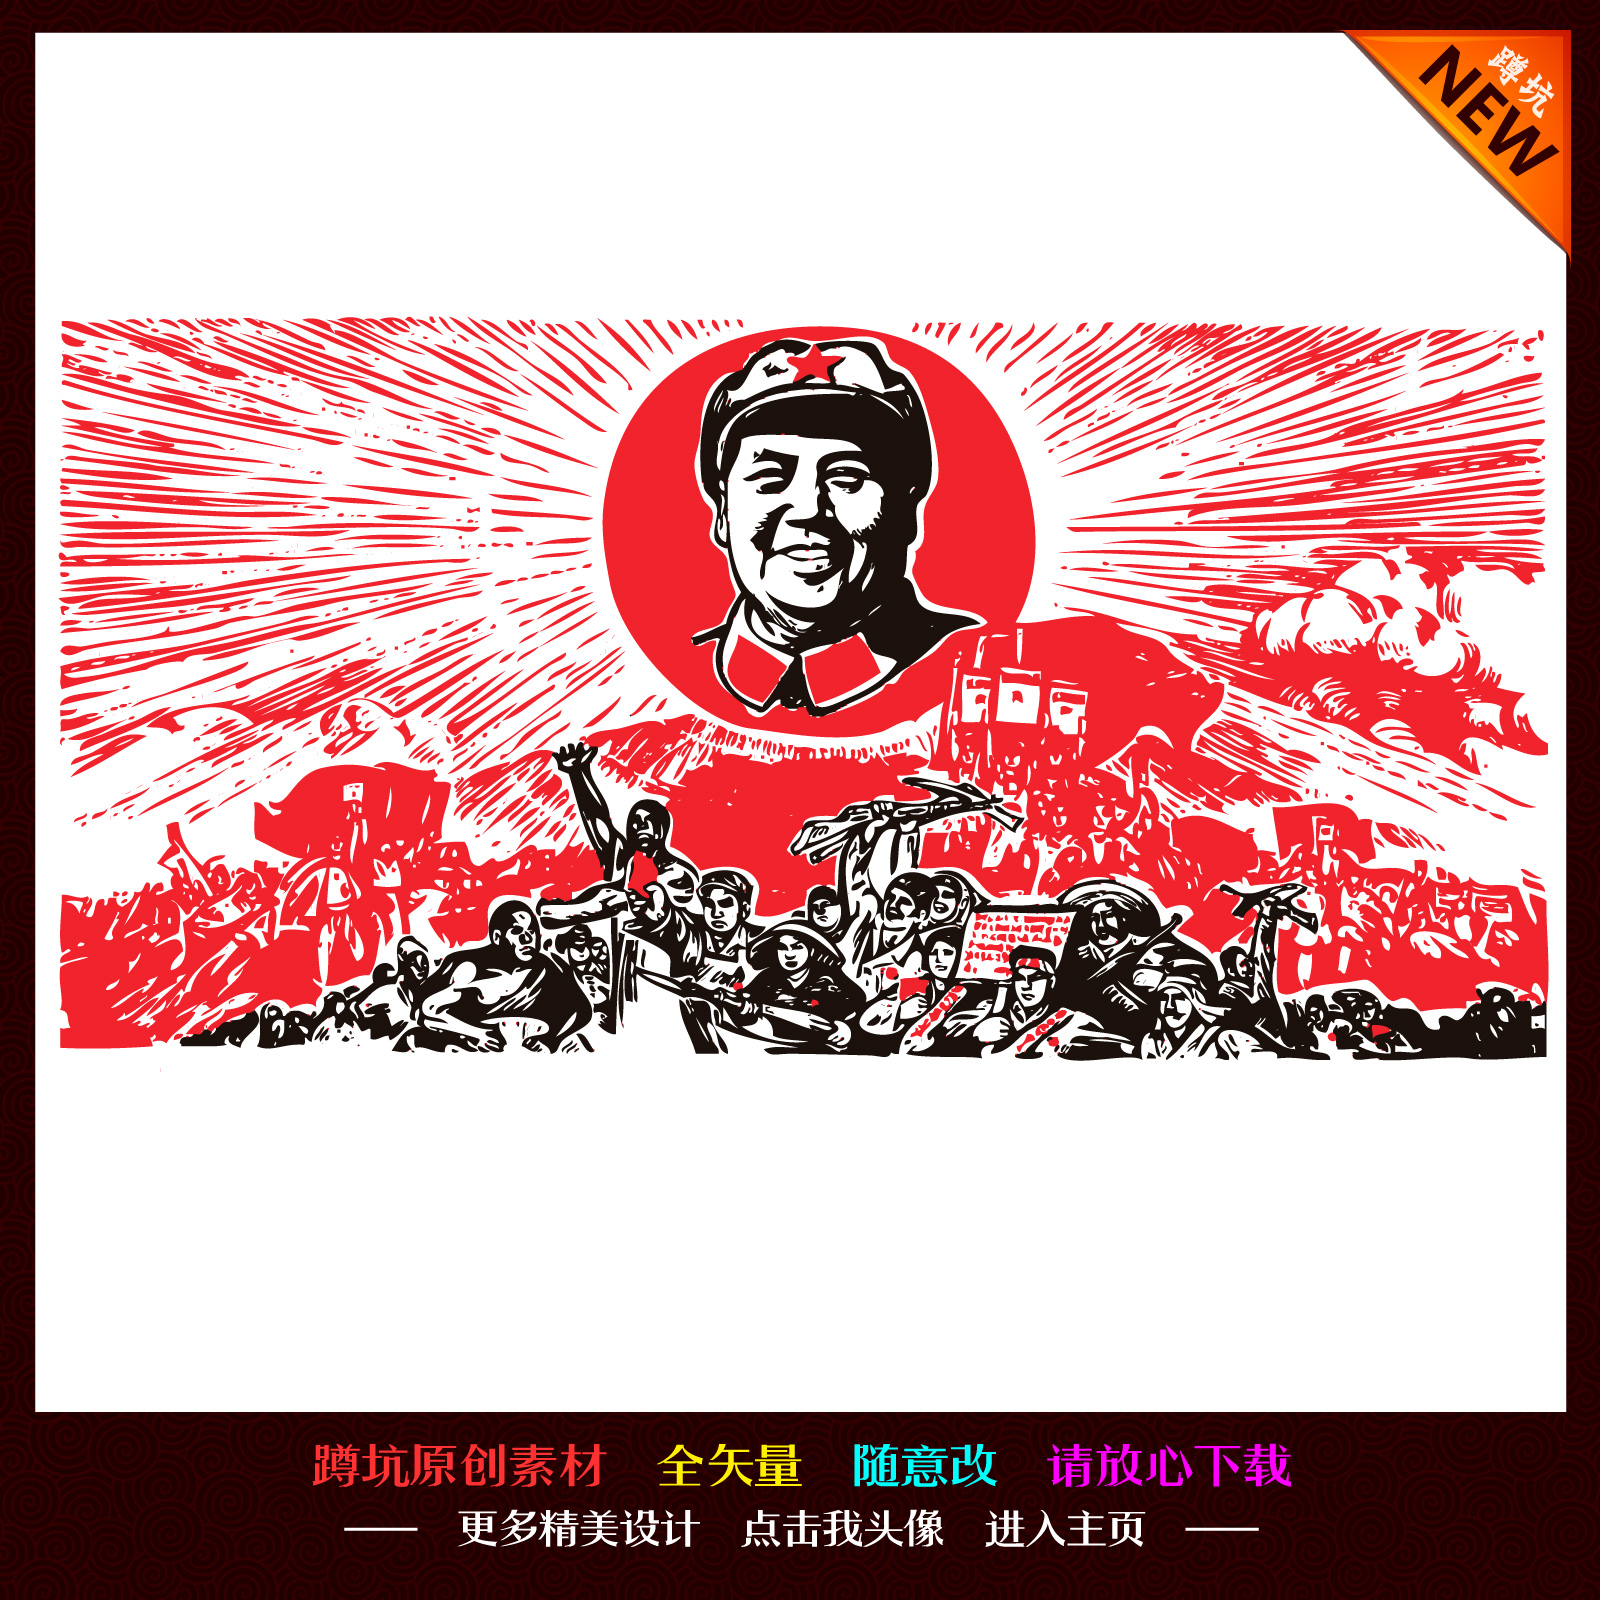 chinesefontdesign.com 2017 04 04 18 11 40 Chinese President Mao Zedong Thought   China Illustrations Vectors AI ESP MAO zedong AI China red revolution vectors China red revolution cdr China red revolution